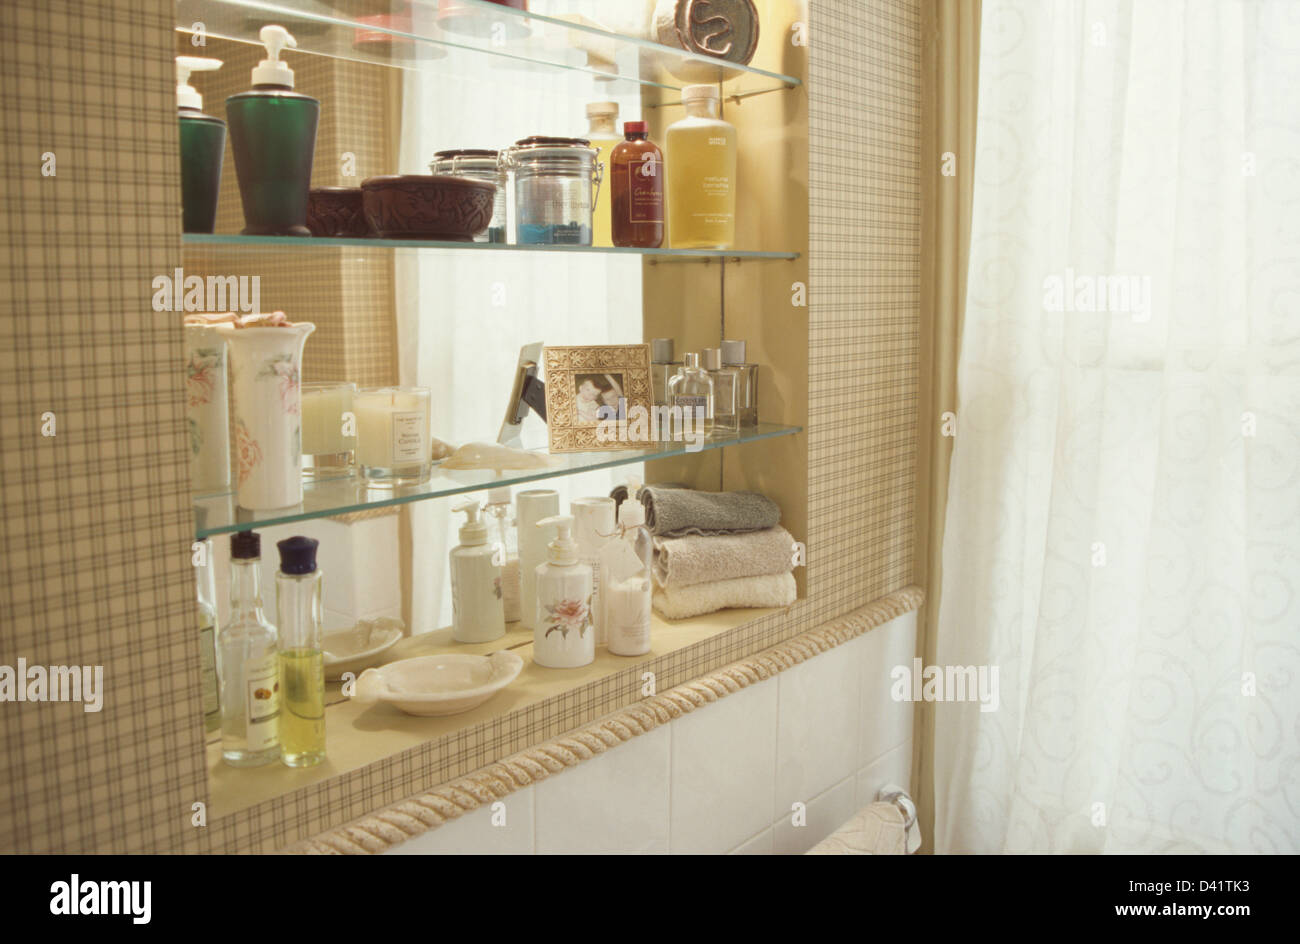 Glass Perfume Bottles And Toiletries On Glass Shelves In Modern Bathroom